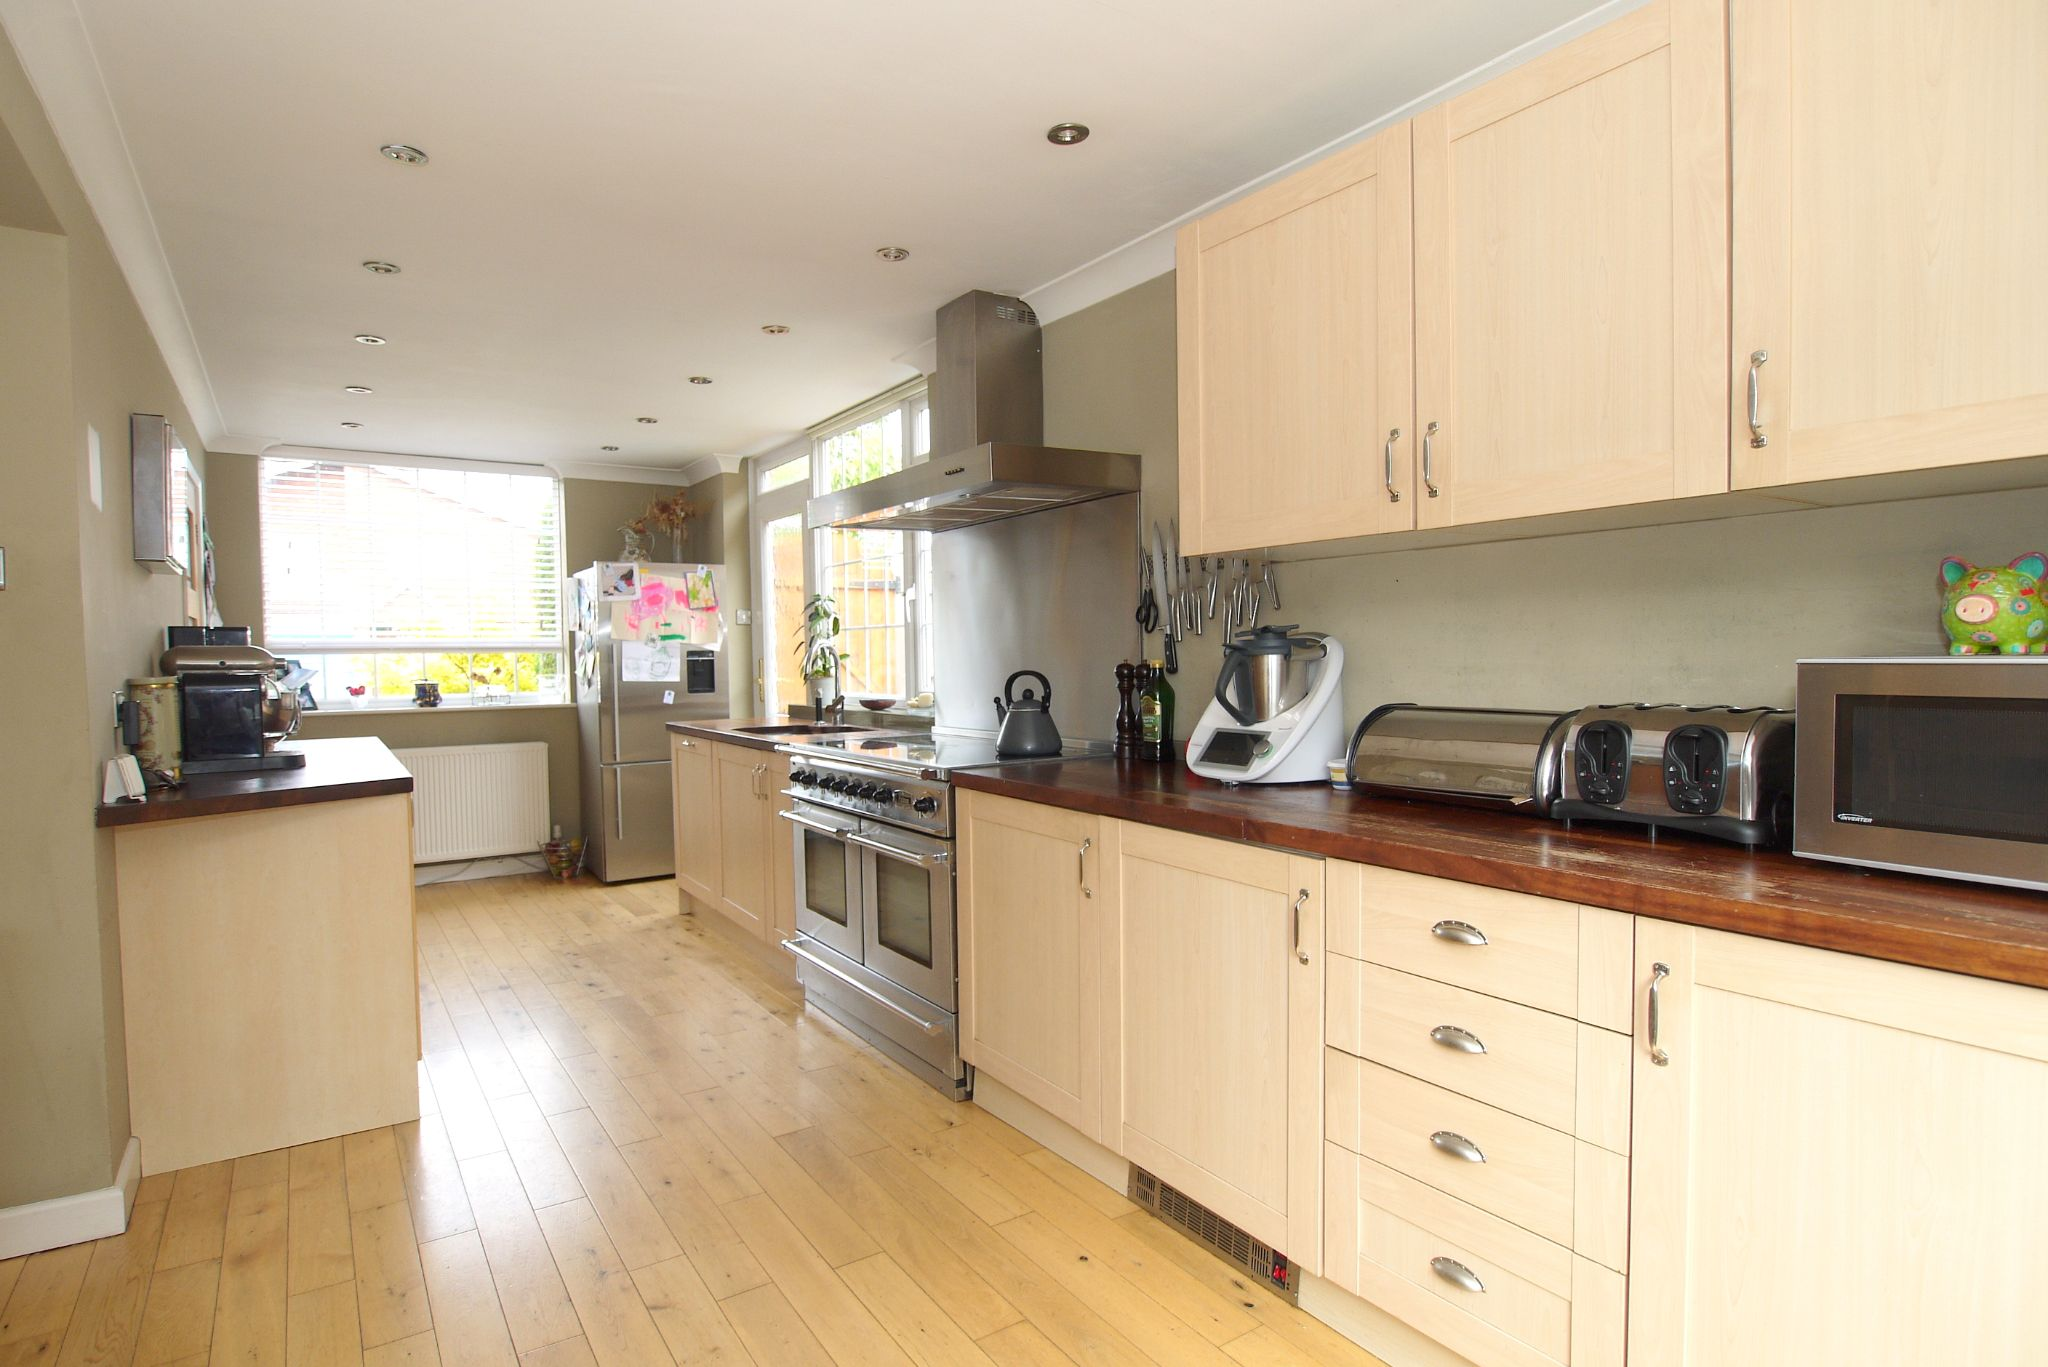 4 bedroom detached house Sold in Sevenoaks - Photograph 5